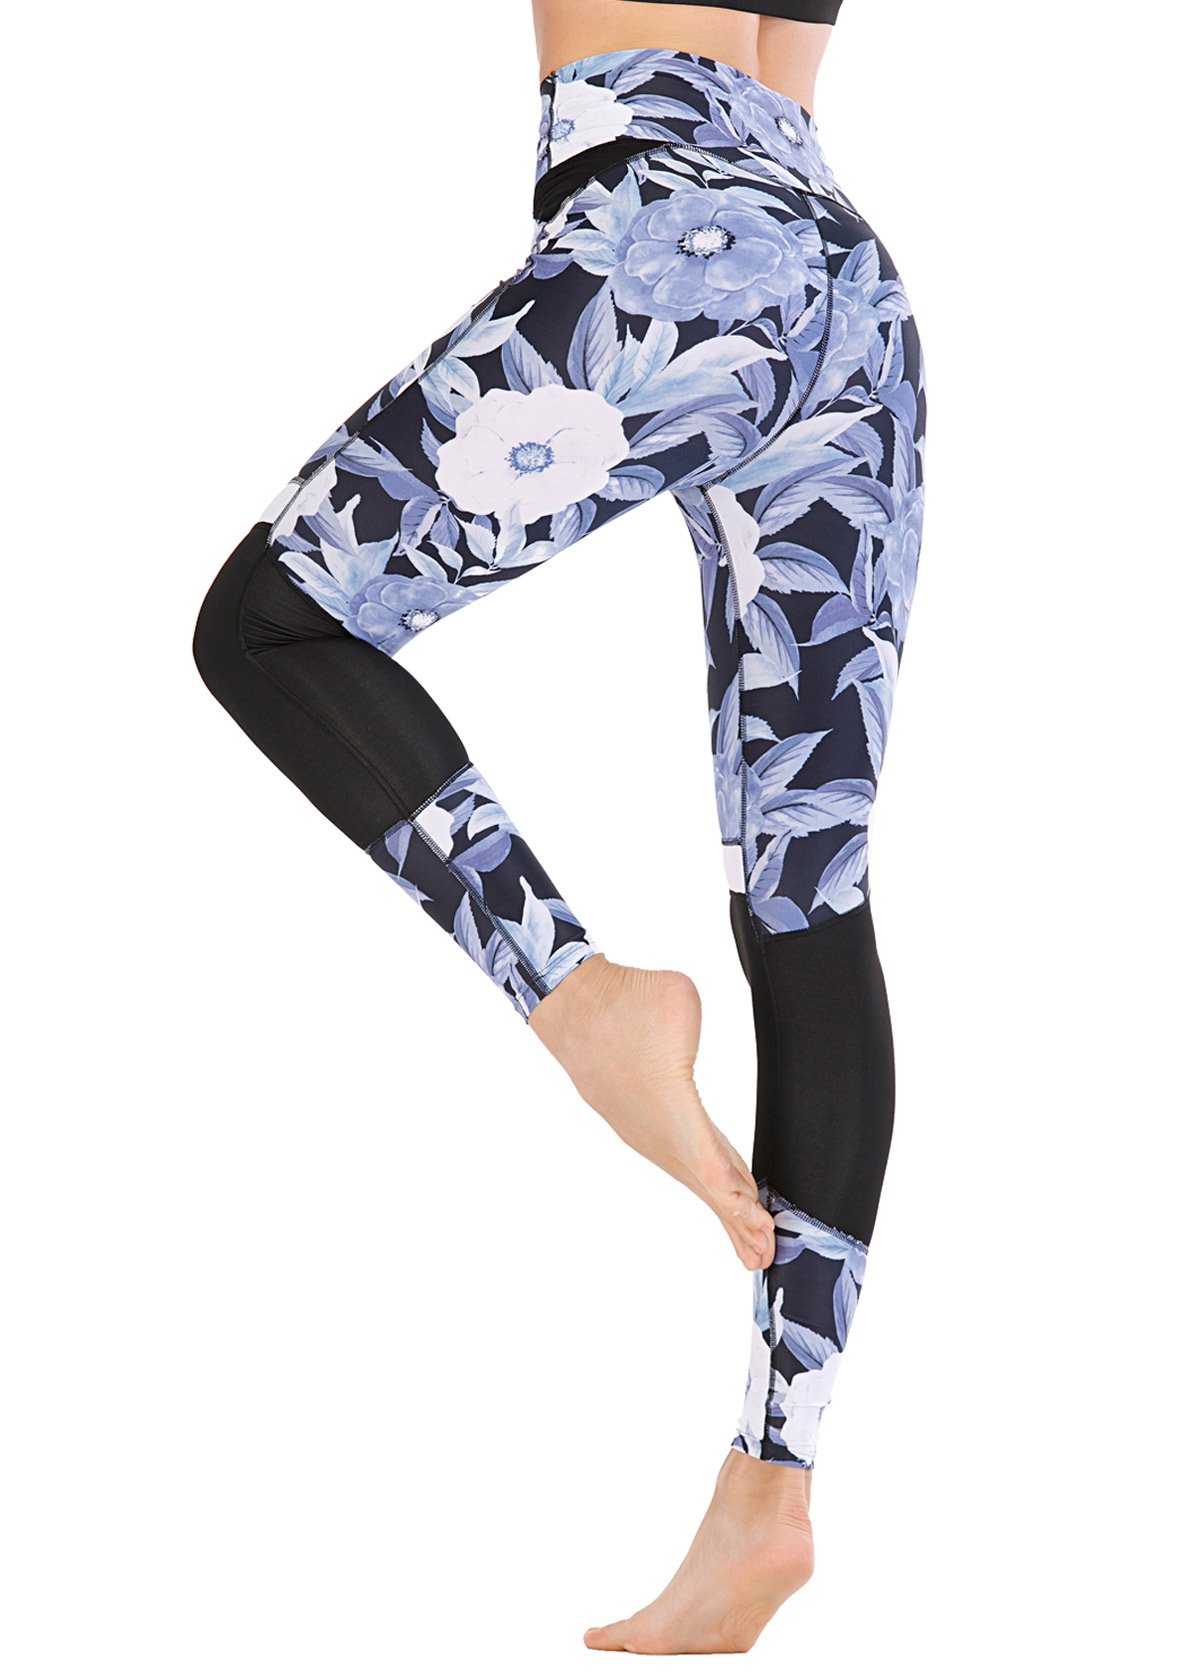 Floral Print Moisture Wicking Tight Pants